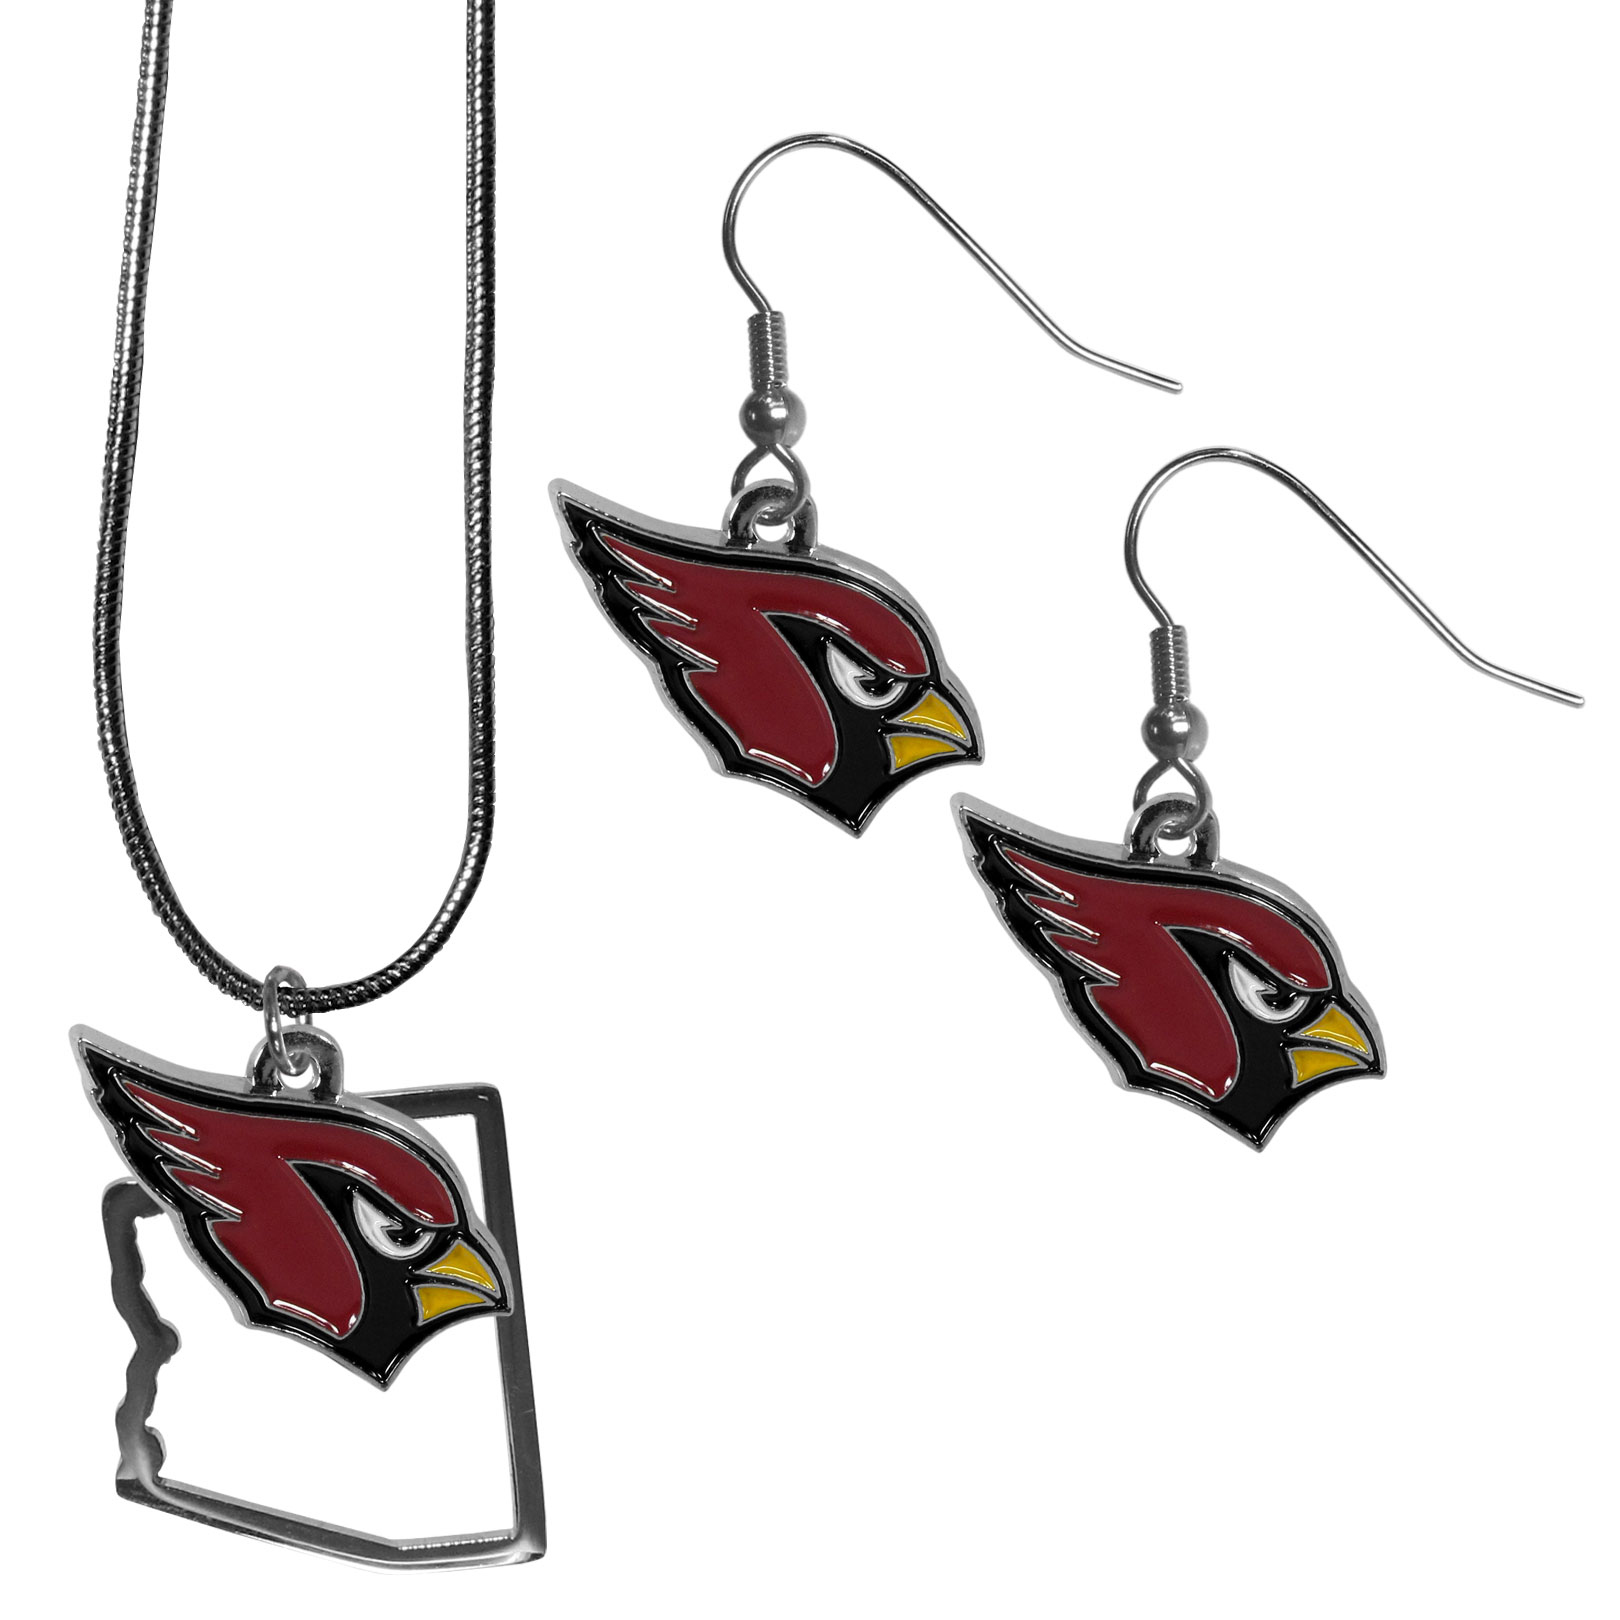 Arizona Cardinals Dangle Earrings and State Necklace Set - Get in on the trend! State themes are a trend that just keeps getting more popular and this jewelry set takes the state style and give it a sporty twist with a Arizona Cardinals necklace that features an Arizona state outline charm paired with a beautiful team charm and matching team charm dangle earrings. The earrings feature hypoallergenic fishhook posts that are nickel free.